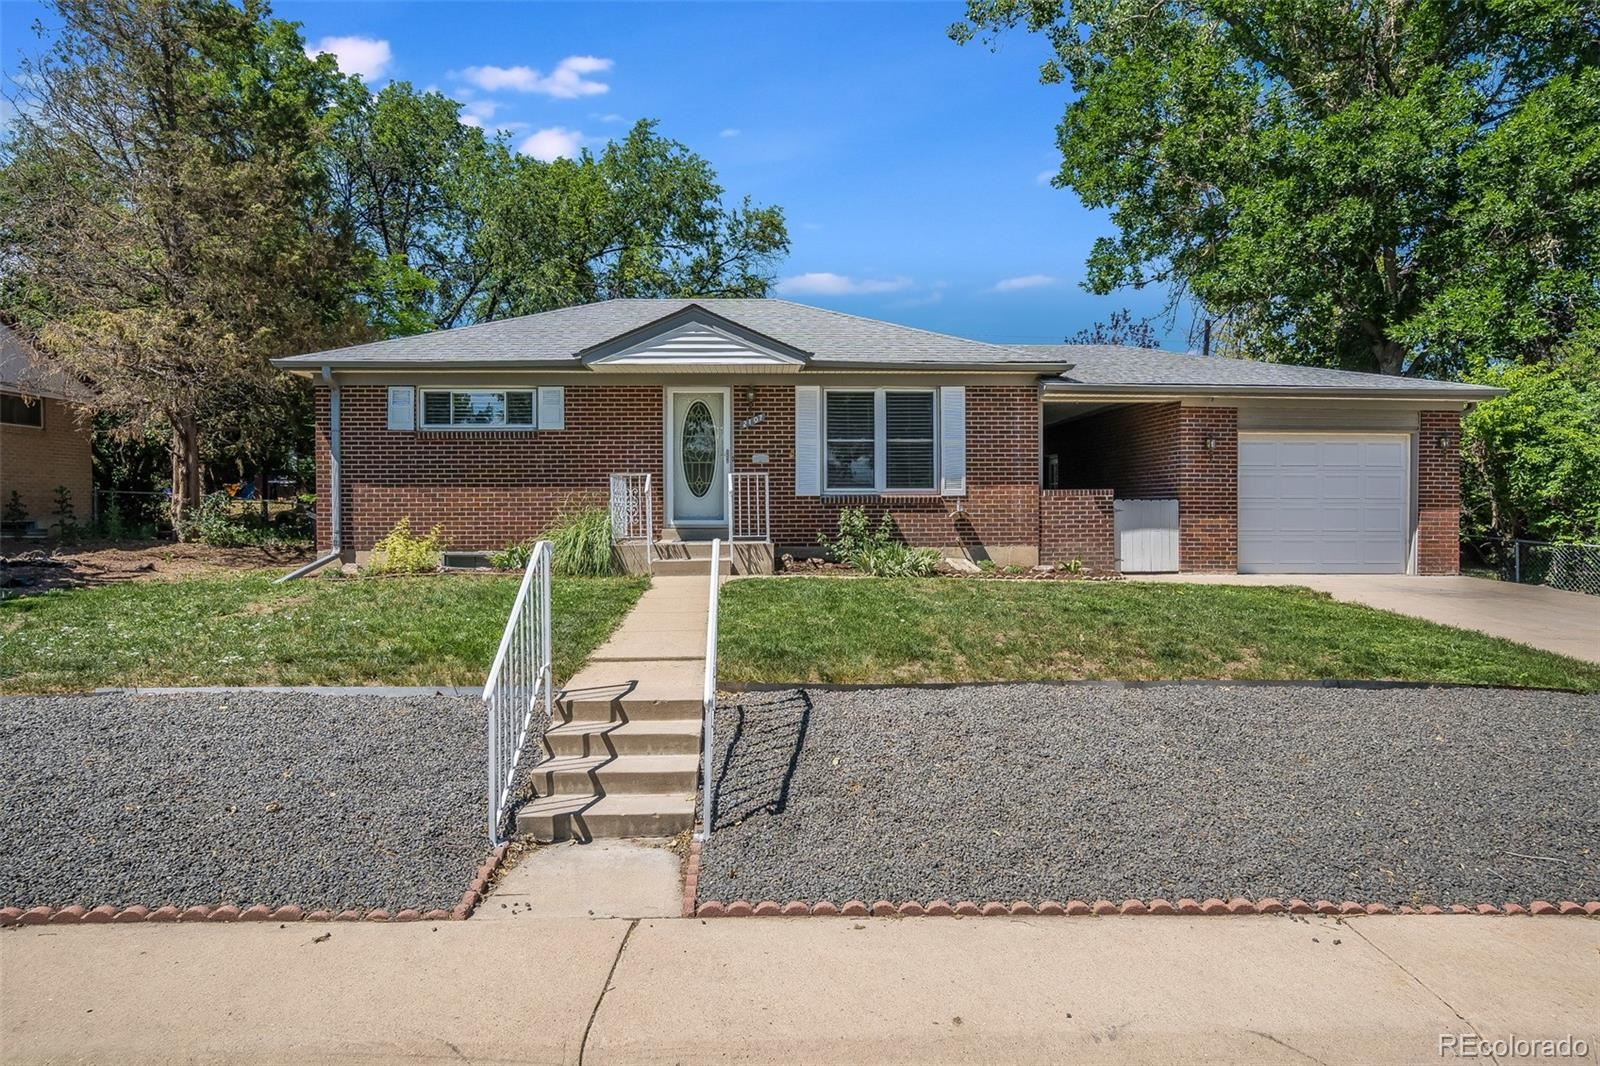 2107 E 113th Place, Northglenn, CO 80233 - #: 1526586